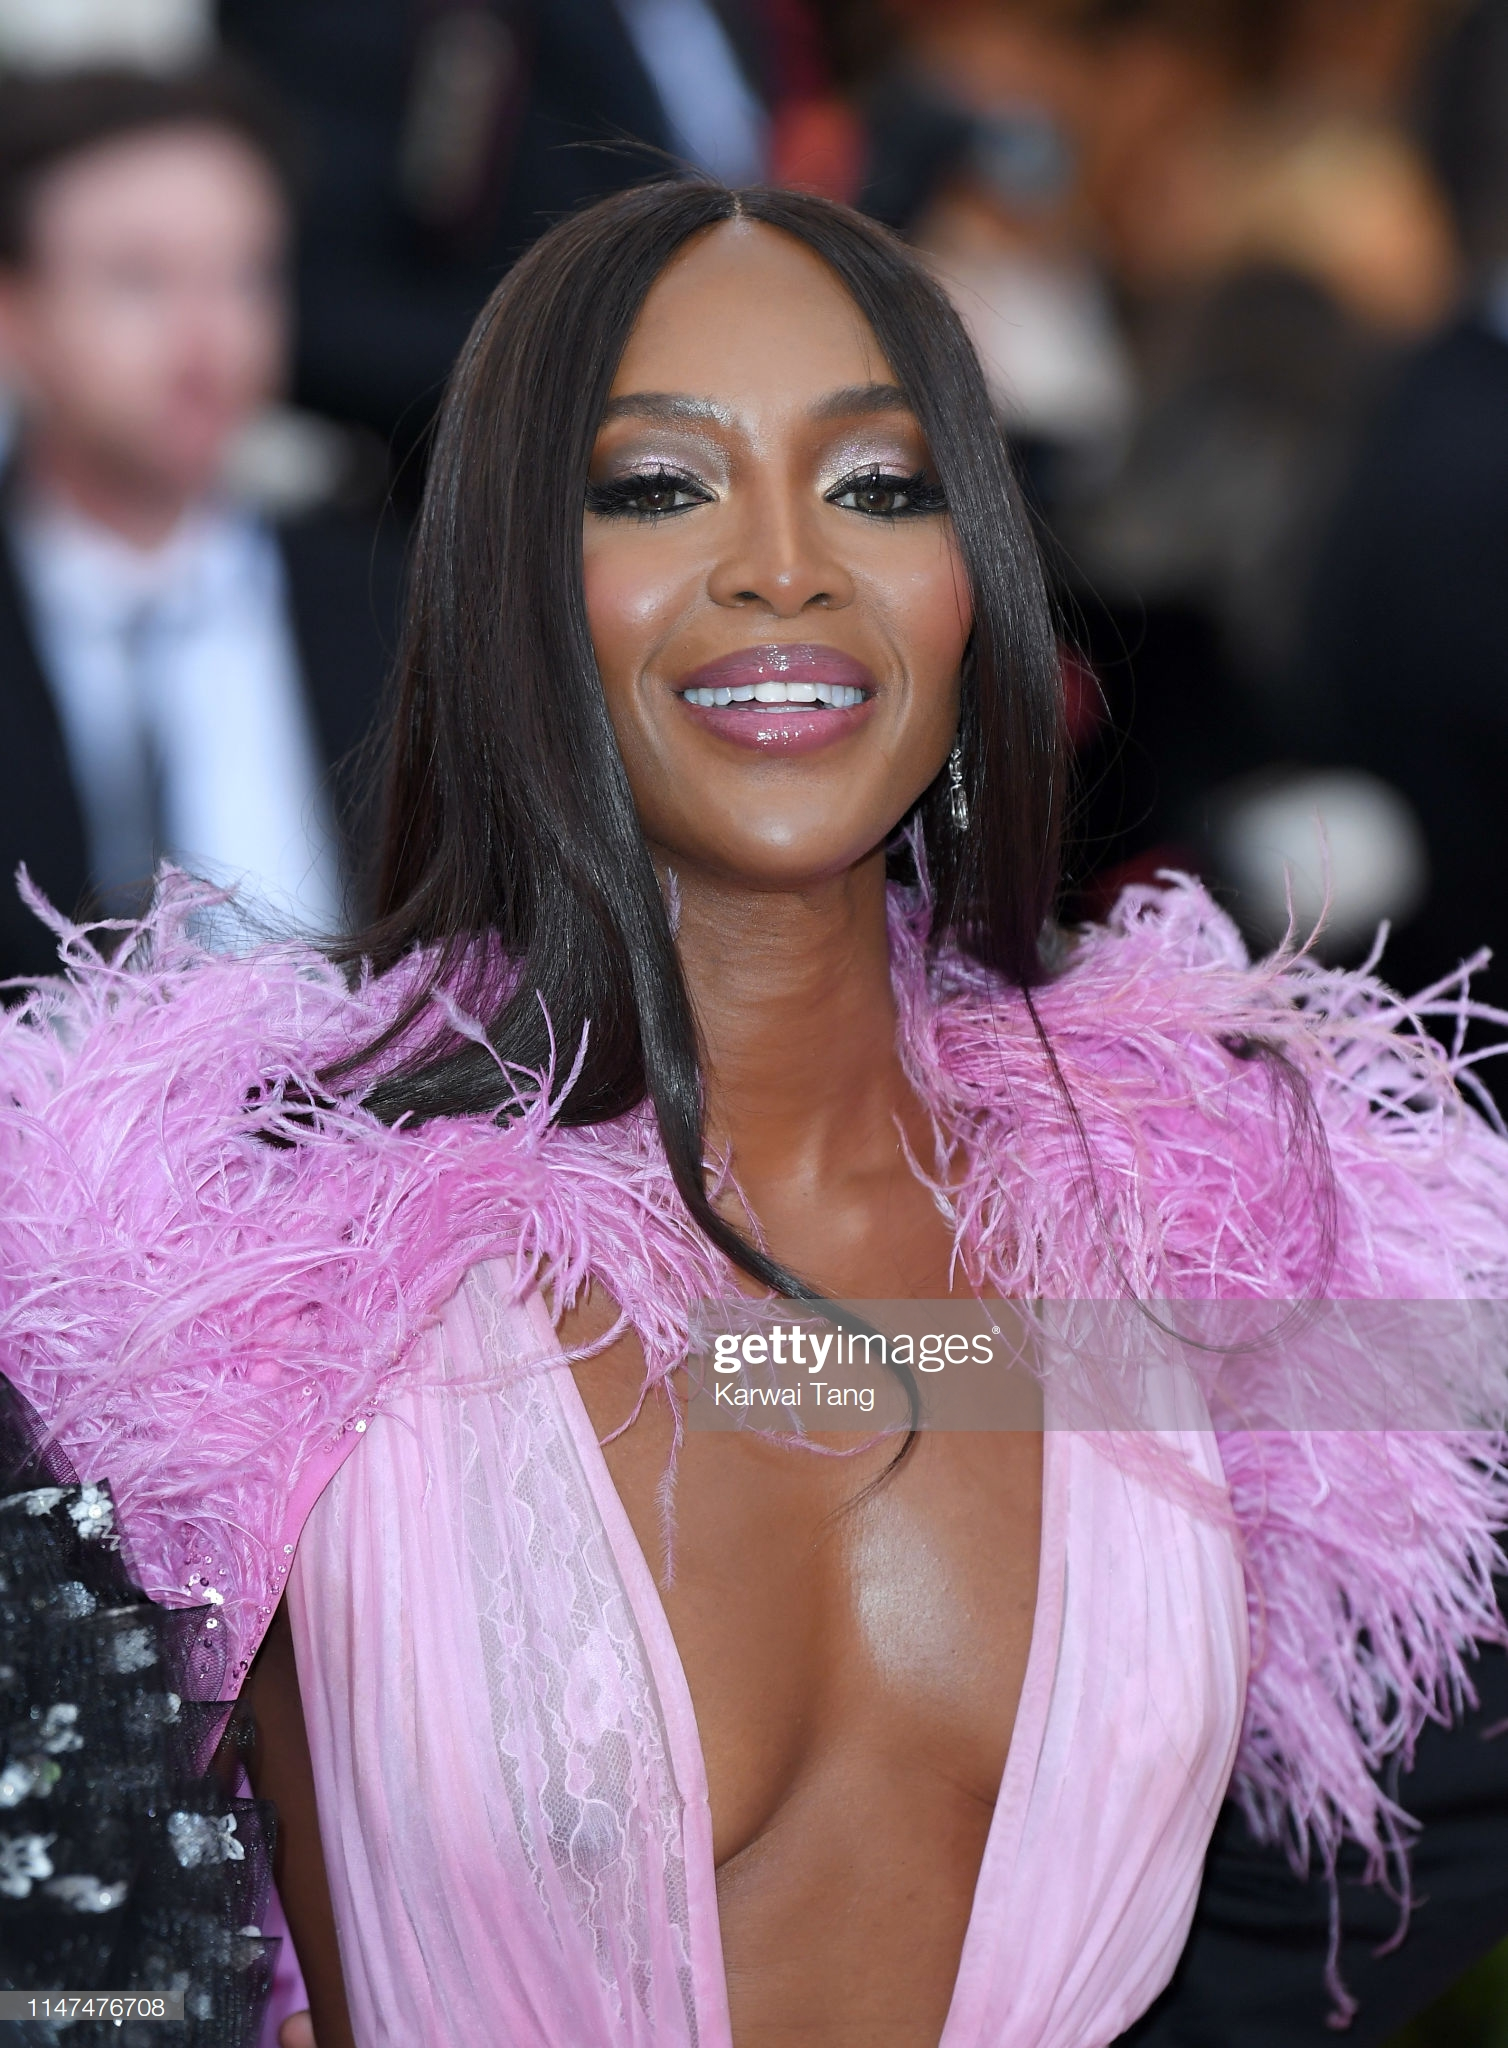 NEW YORK, NEW YORK - MAY 06: Naomi Campbell  arrives for the 2019 Met Gala celebrating Camp: Notes on Fashion at The Metropolitan Museum of Art on May 06, 2019 in New York City. (Photo by Karwai Tang/Getty Images)